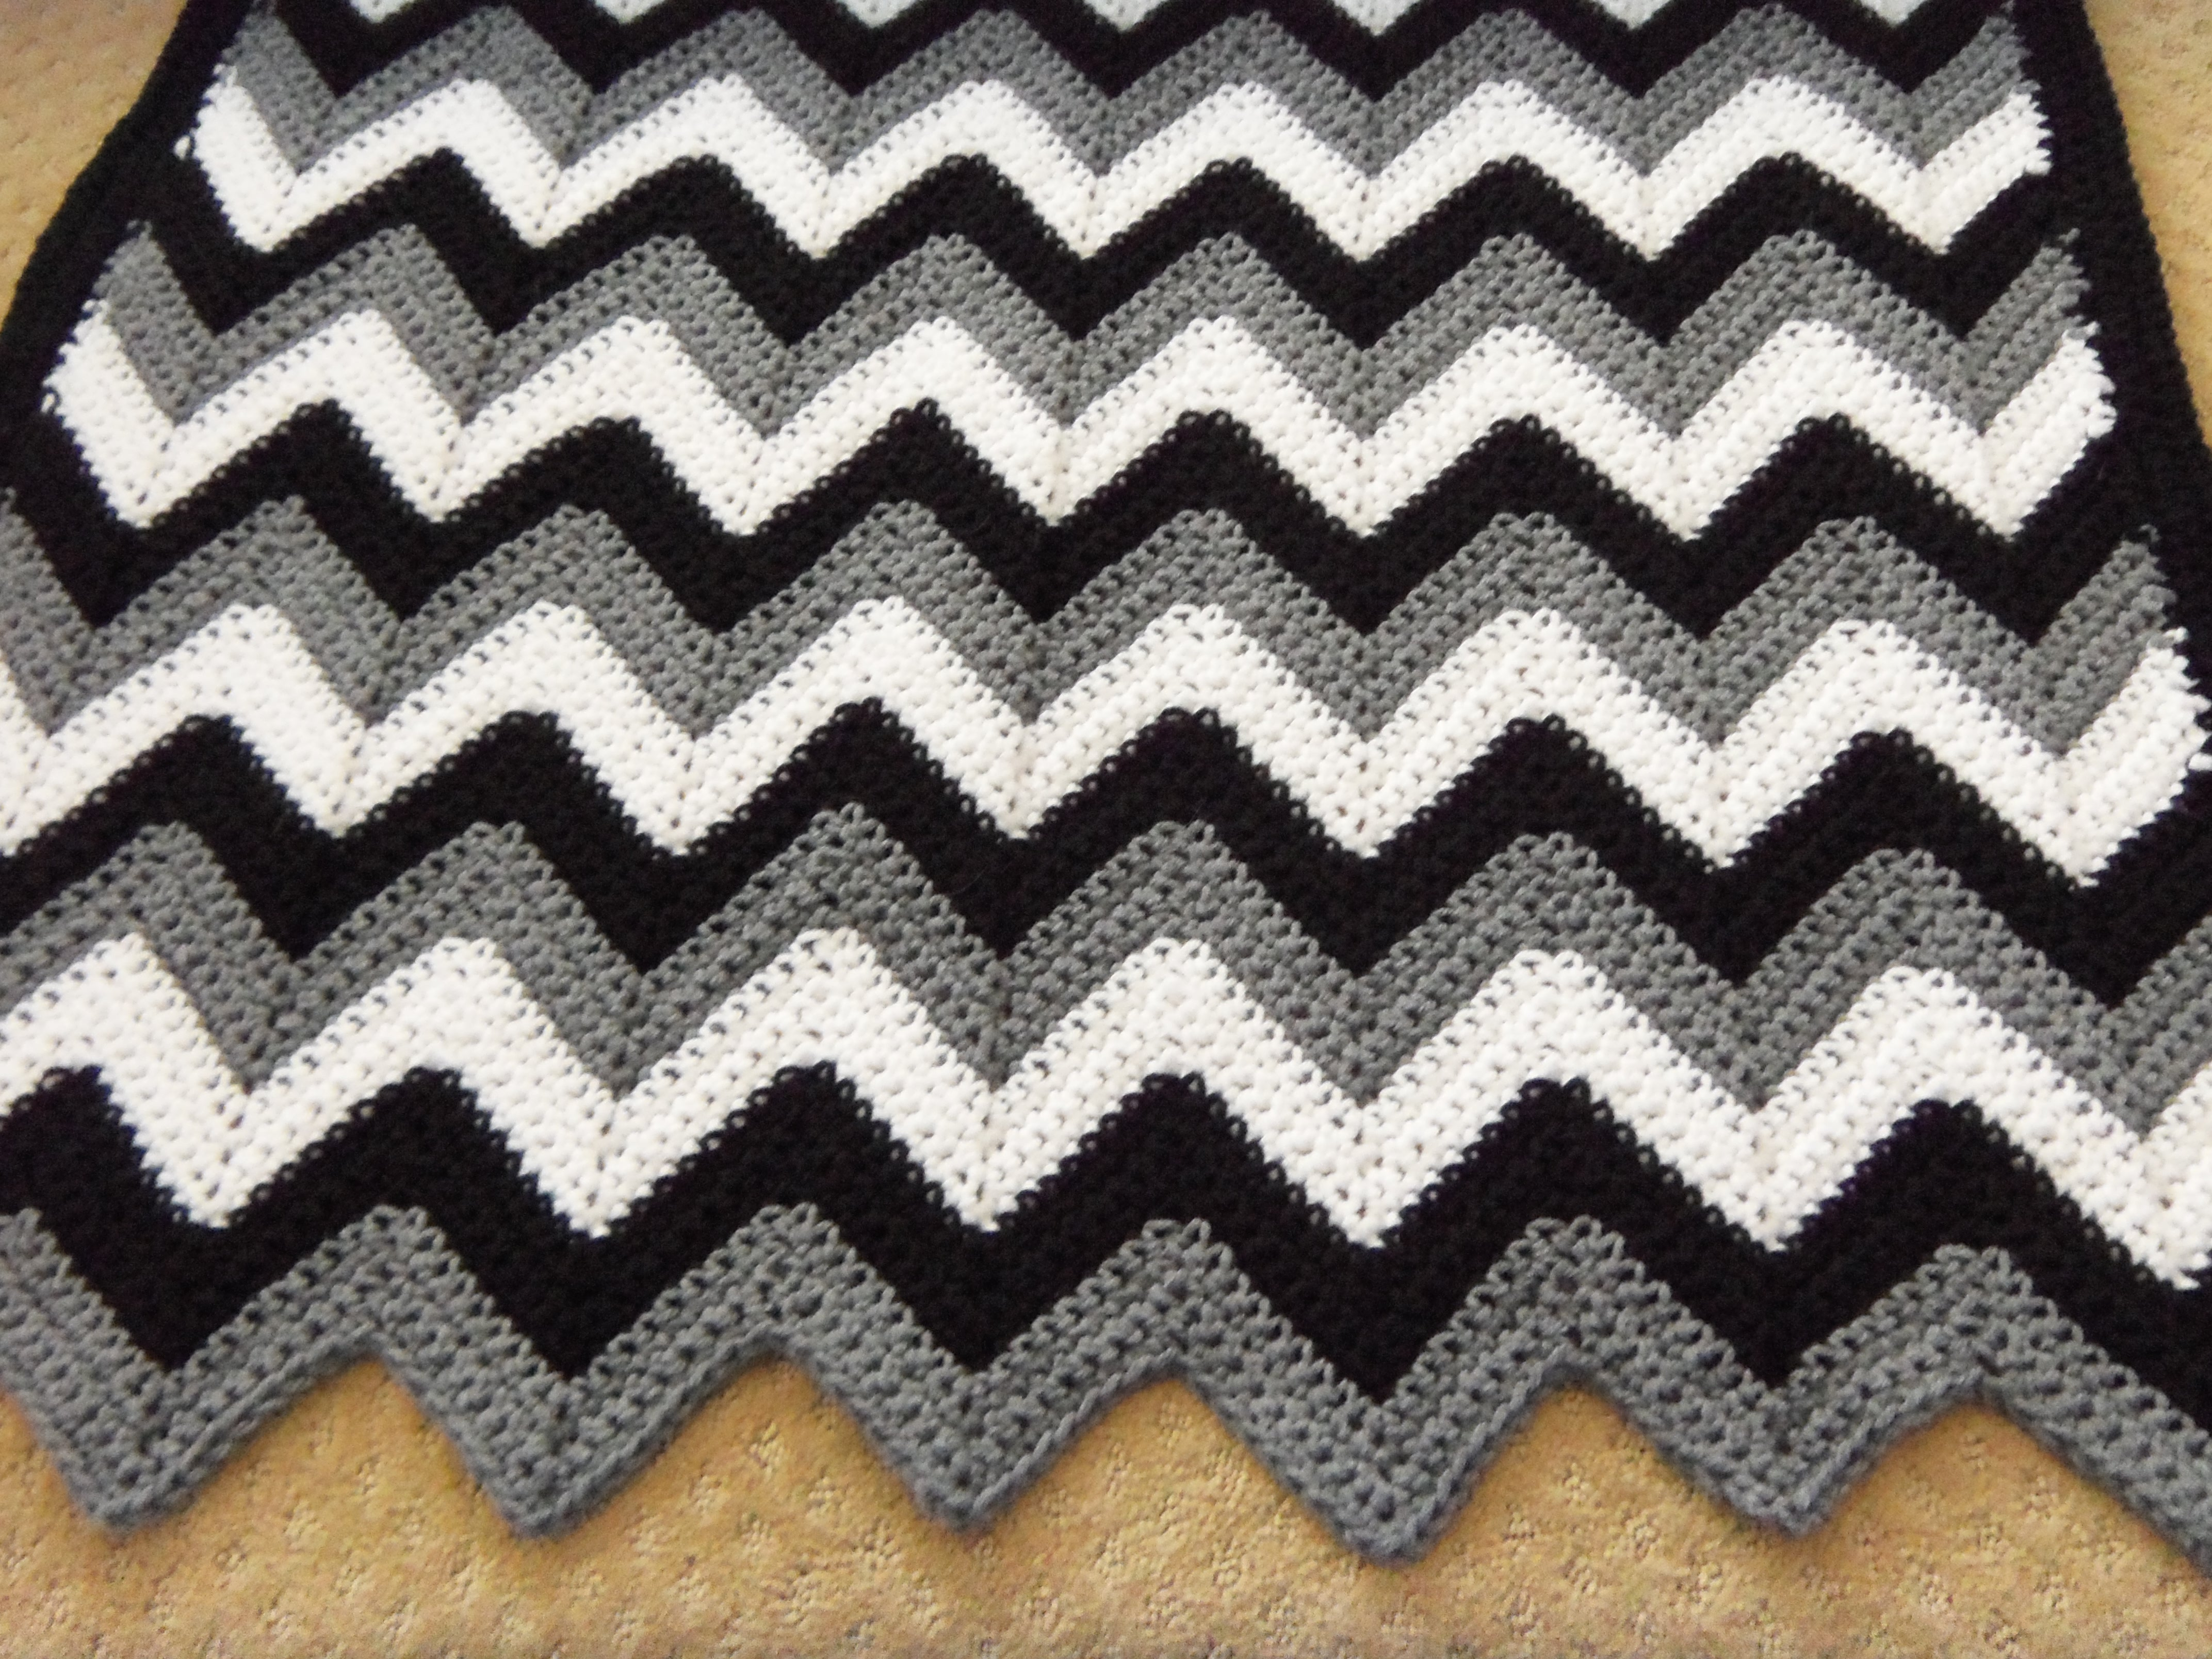 Ripple Knitting Pattern Afghan : 1000+ images about Ripple crochet afgans on Pinterest ...